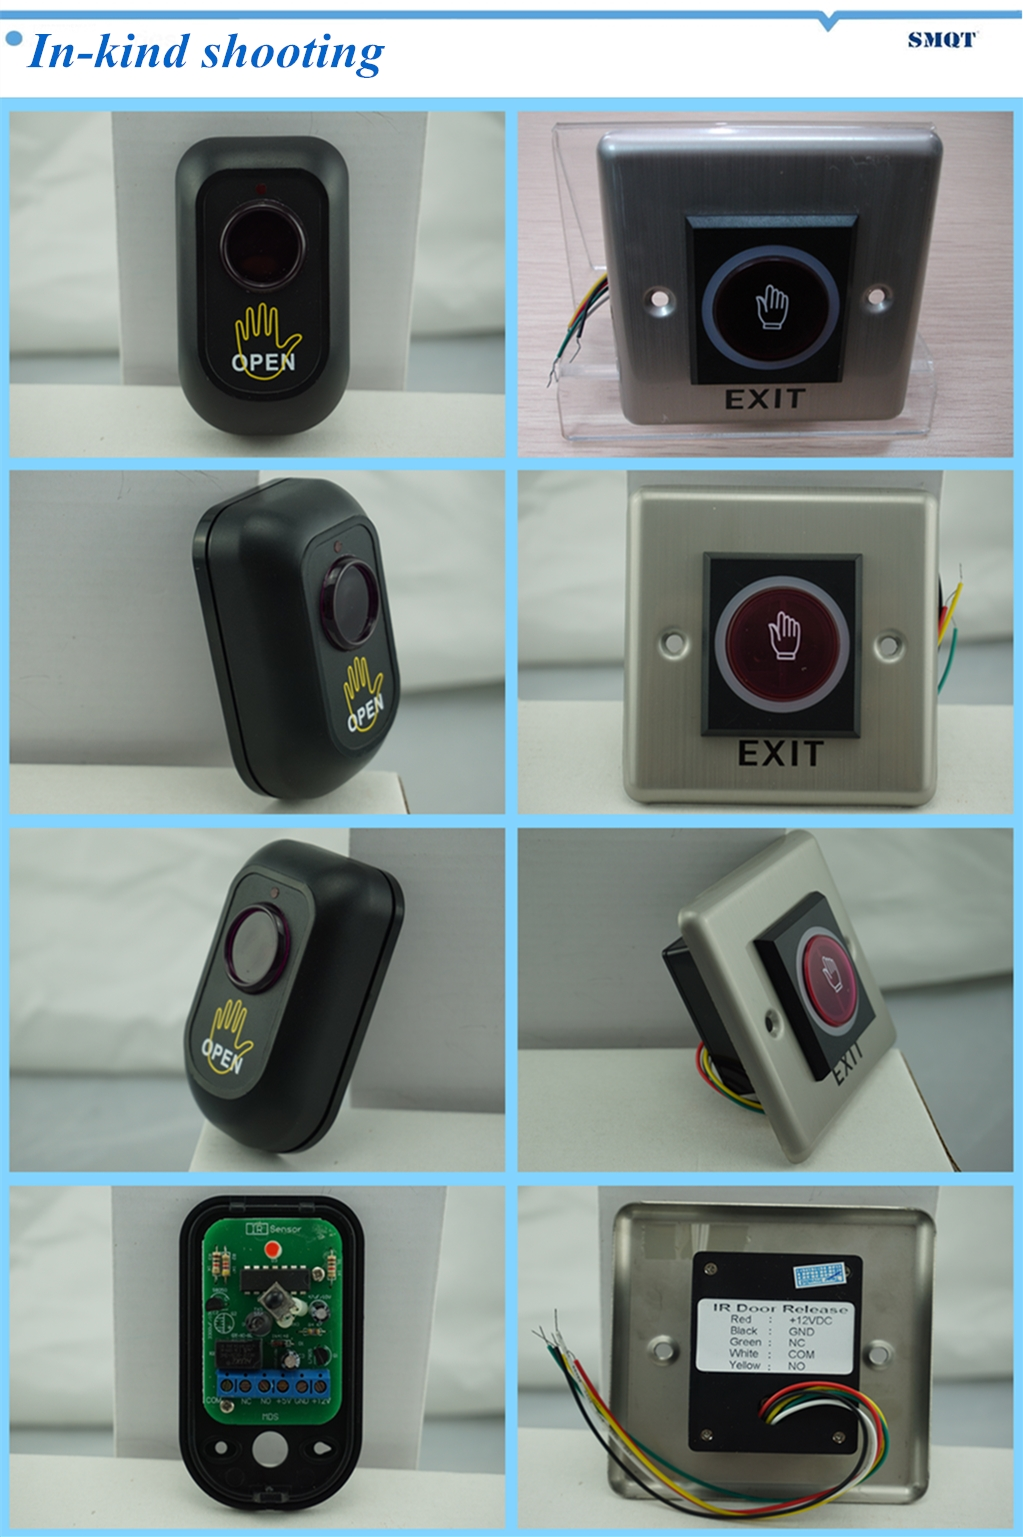 Infrared induction  door switch button